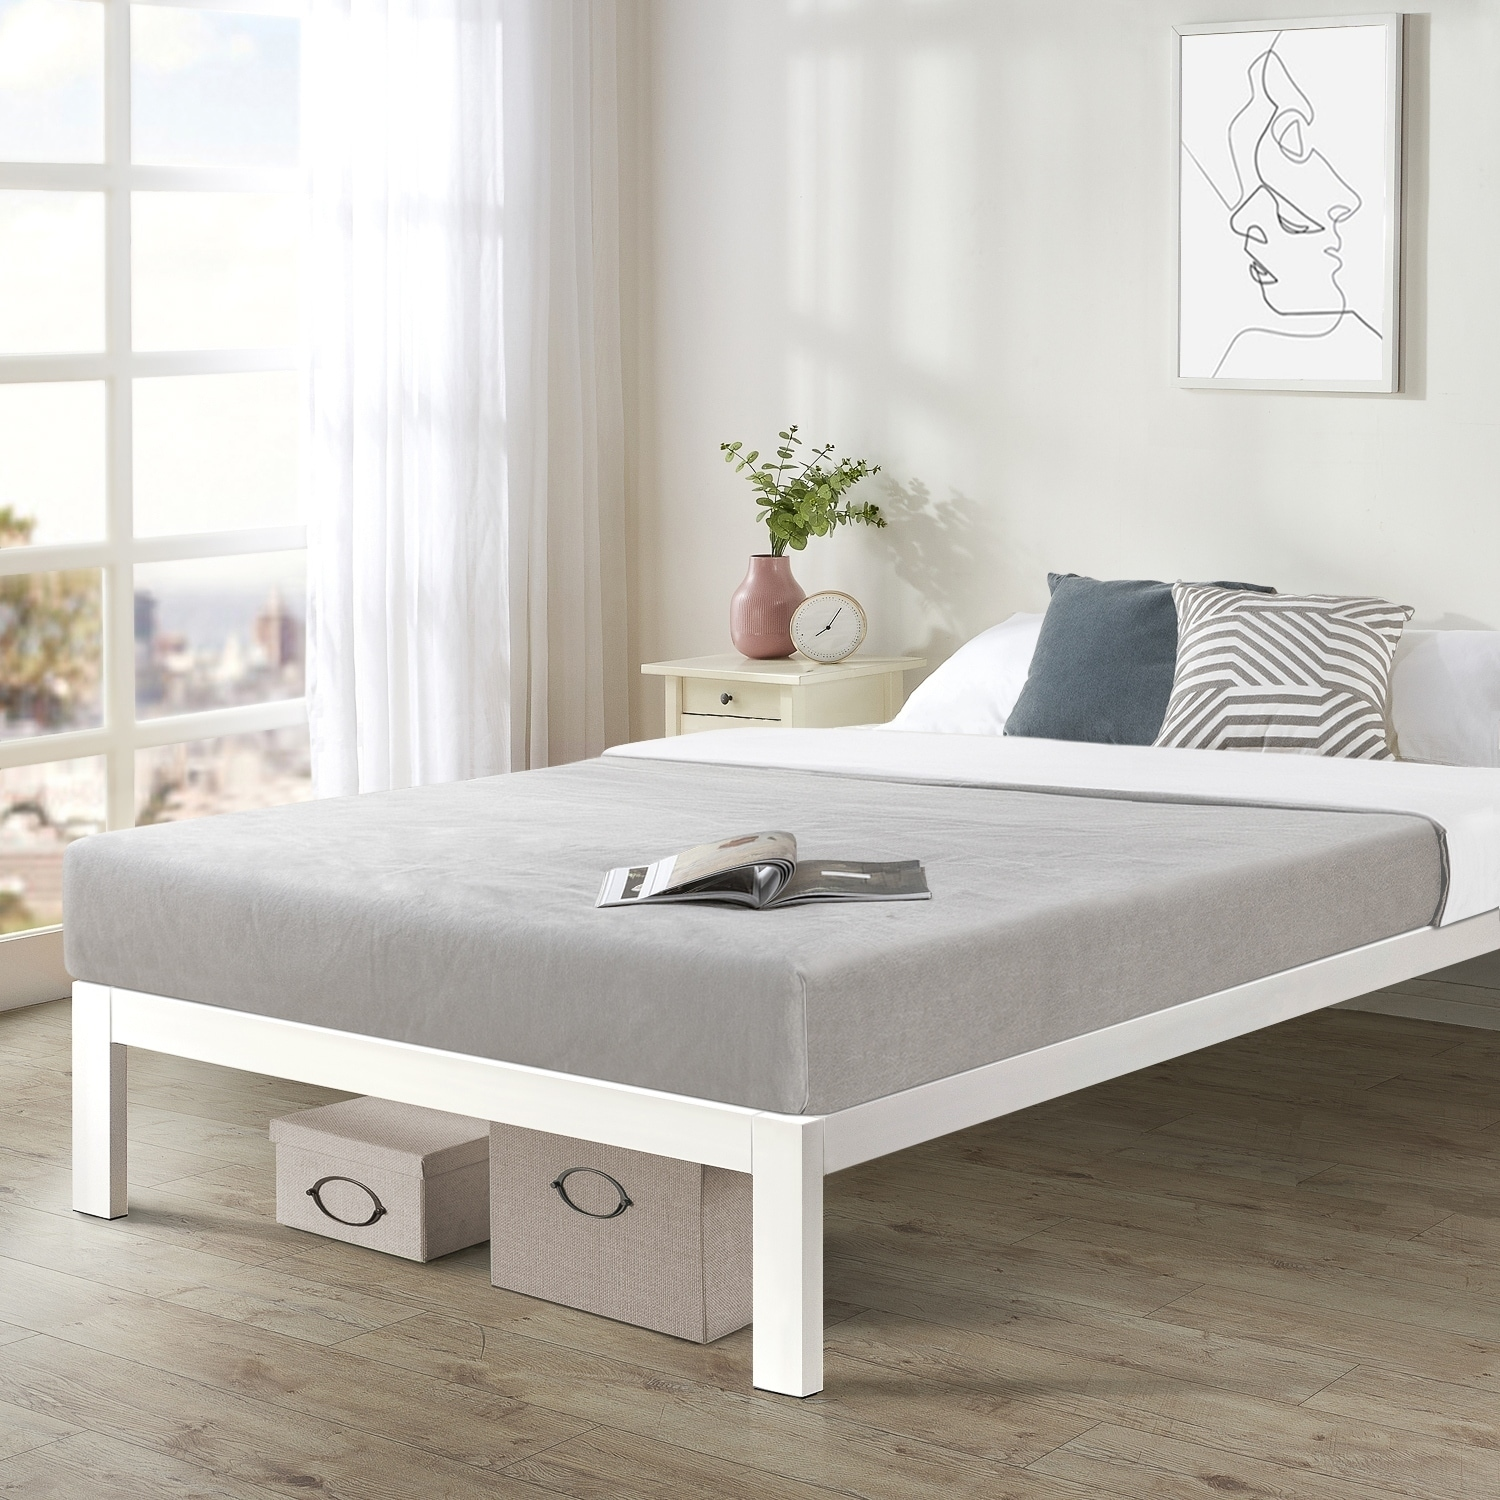 new arrivals fc3cc 9ea32 King Size Bed Frame Heavy Duty Steel Slats Platform Series Titan C, White -  Crown Comfort